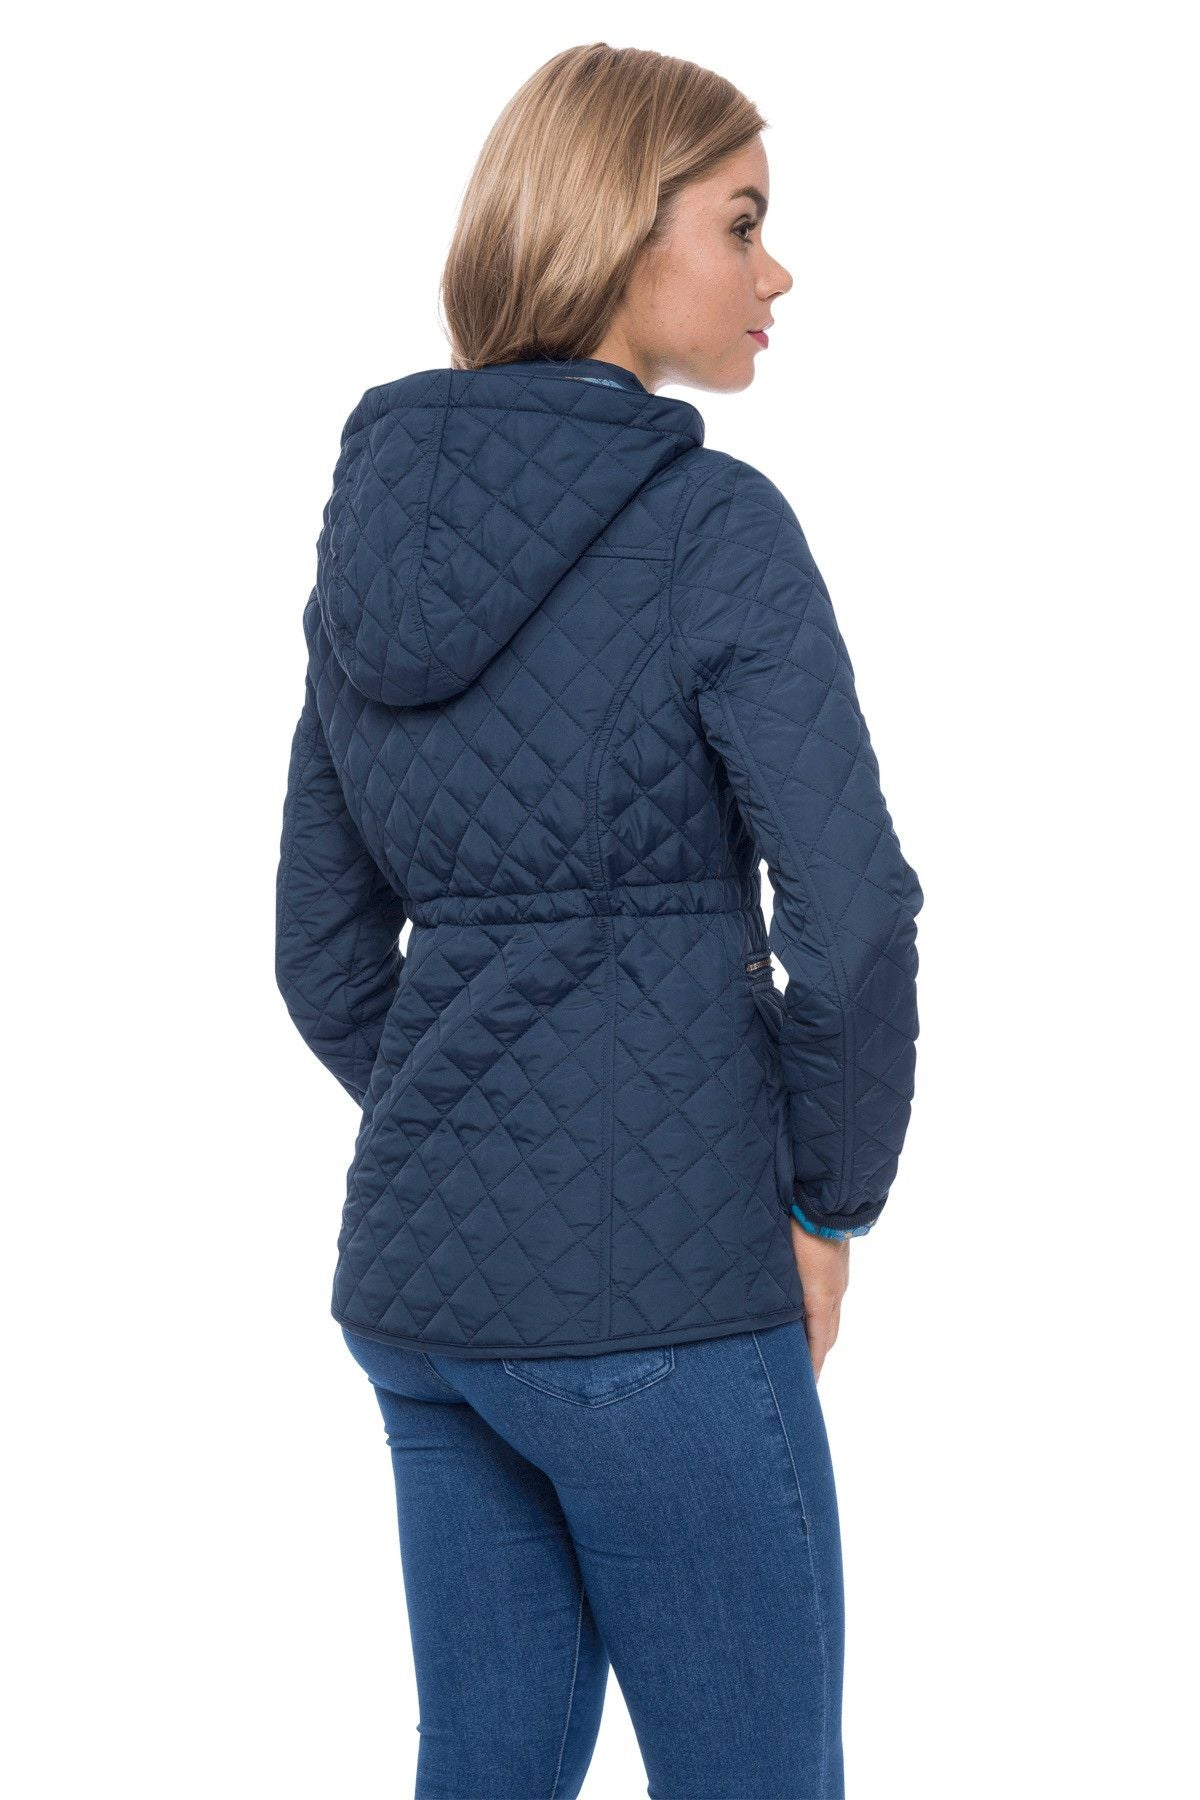 Womens waterproof quilted jacket